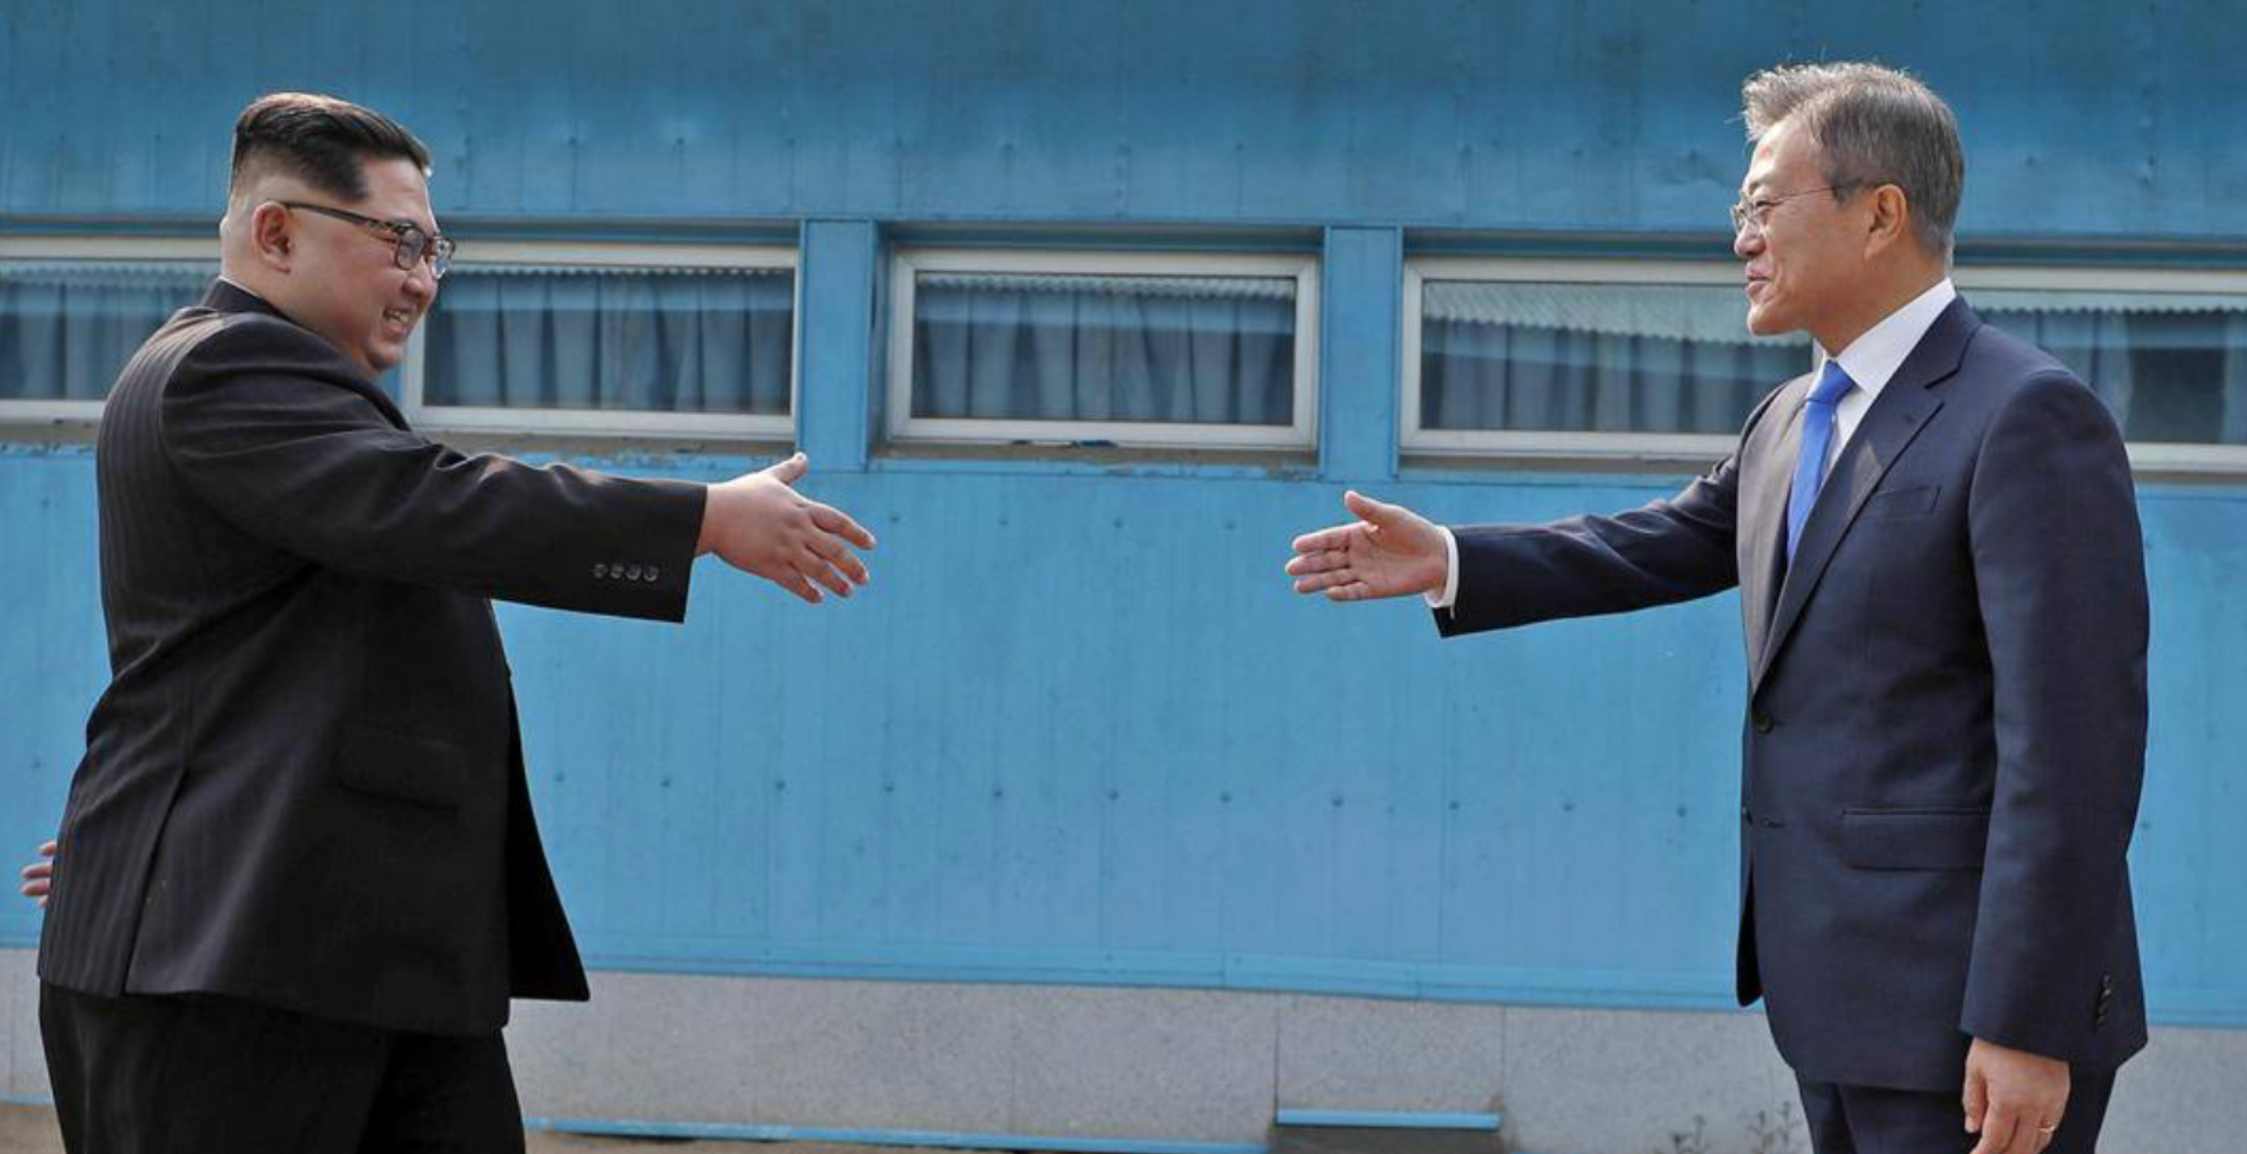 PEACE AND RECONCILIATION: BEYOND THE IMAGES OF KIM AND MOON